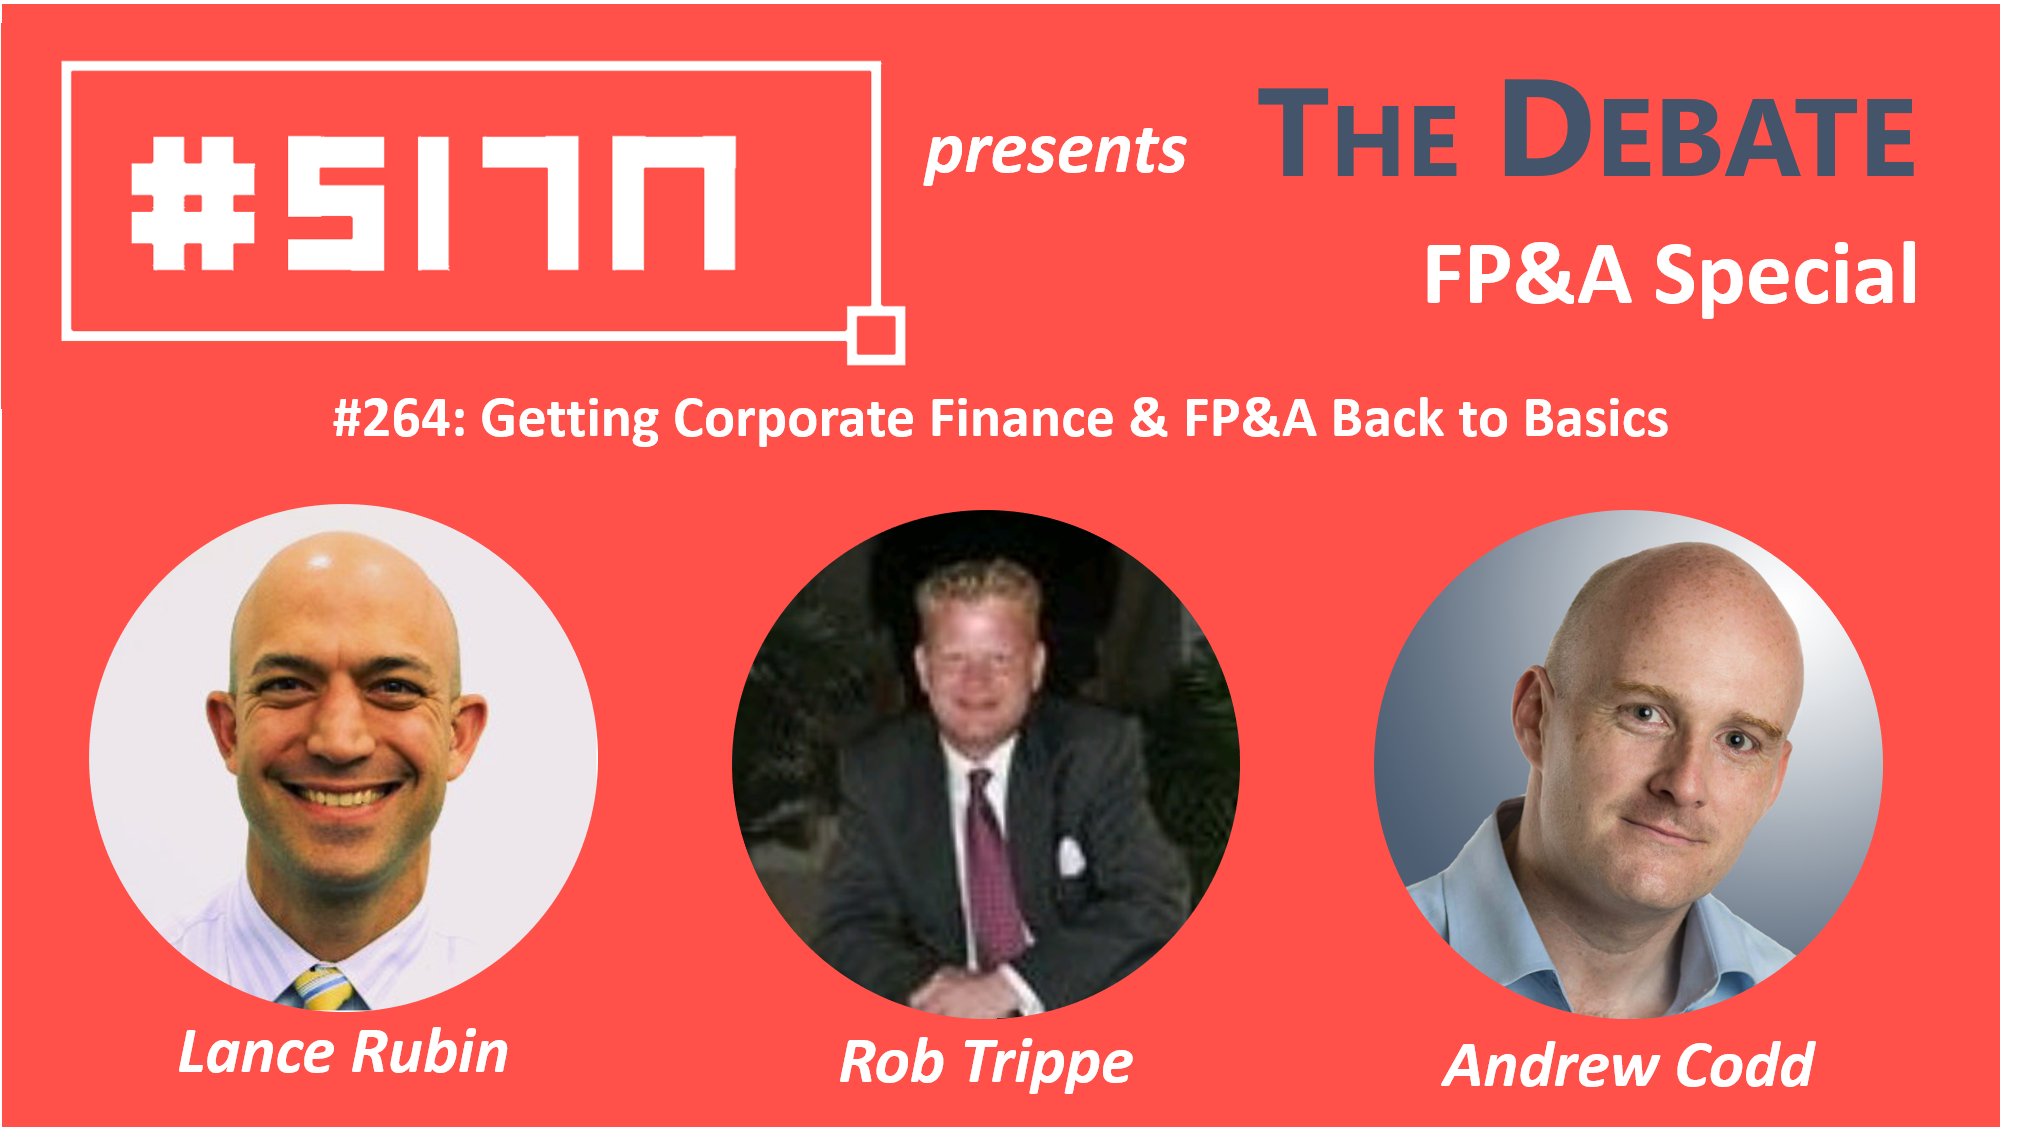 #264: THE DEBATE: Getting Corporate Finance & FP&A Back to Basics